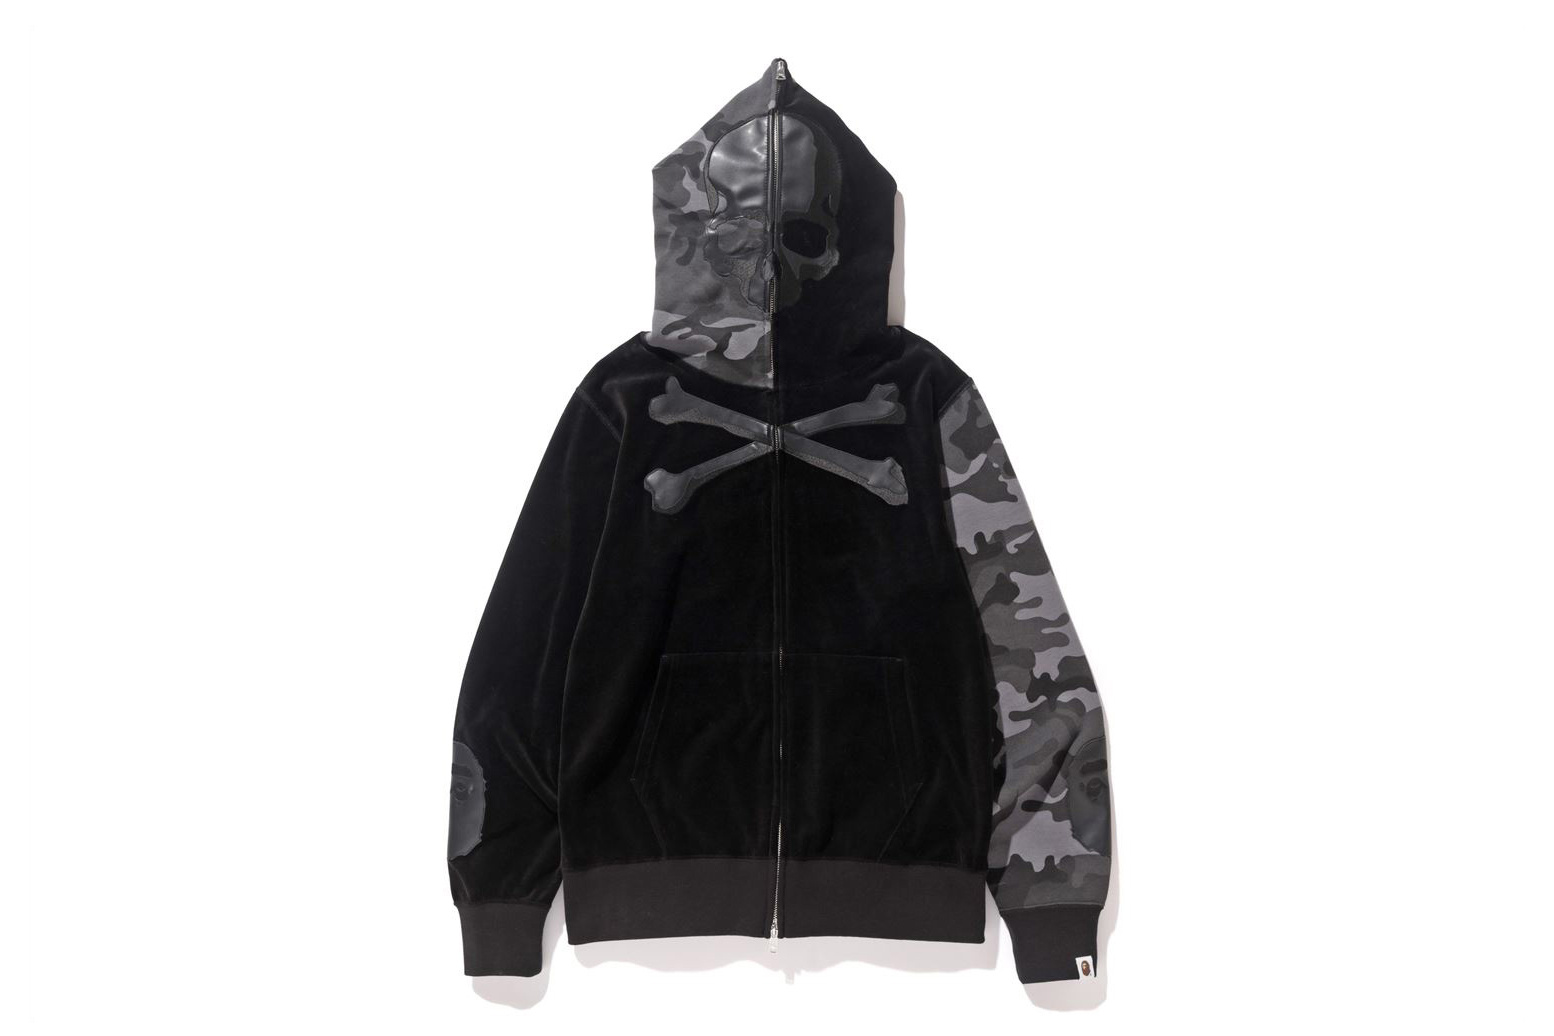 bape-x-mastermind-japan-2016-fall-winter-collaboration-0009